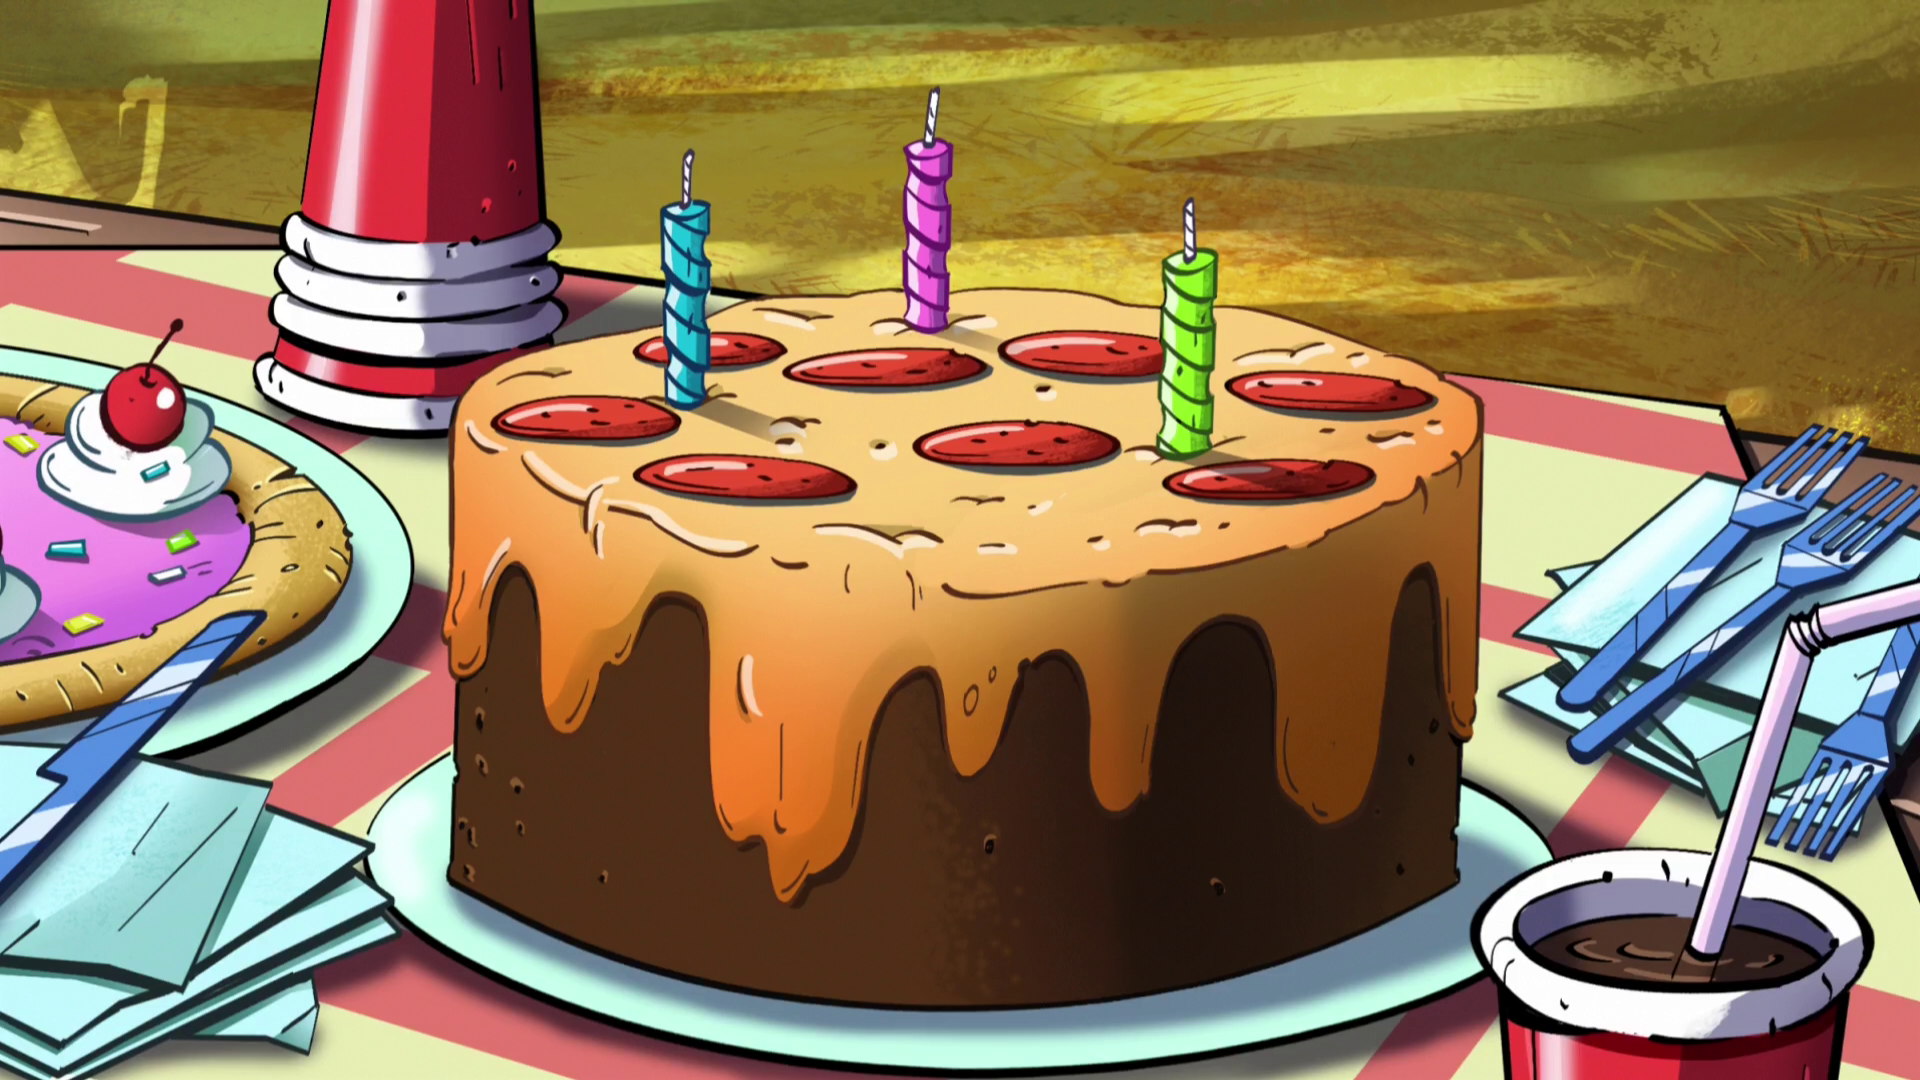 Image S2e8 pizza cakepng Gravity Falls Wiki FANDOM powered by